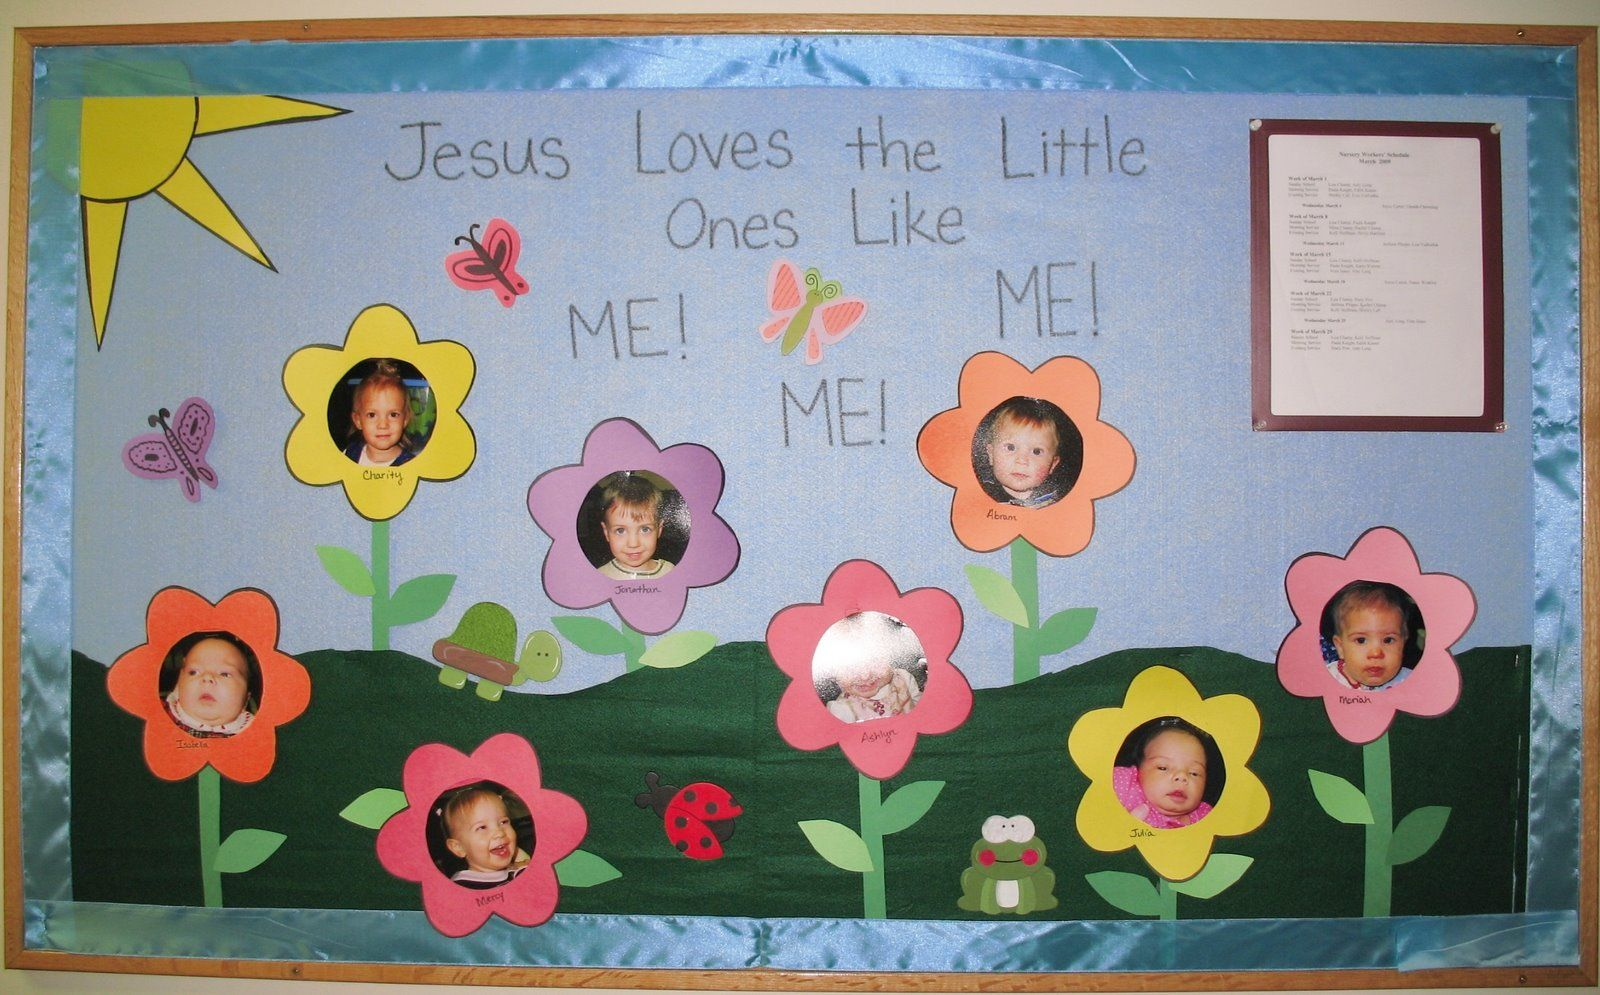 Christian easter bulletin board ideas - Find This Pin And More On Bible Bulletin Board Ideas By Ldzave